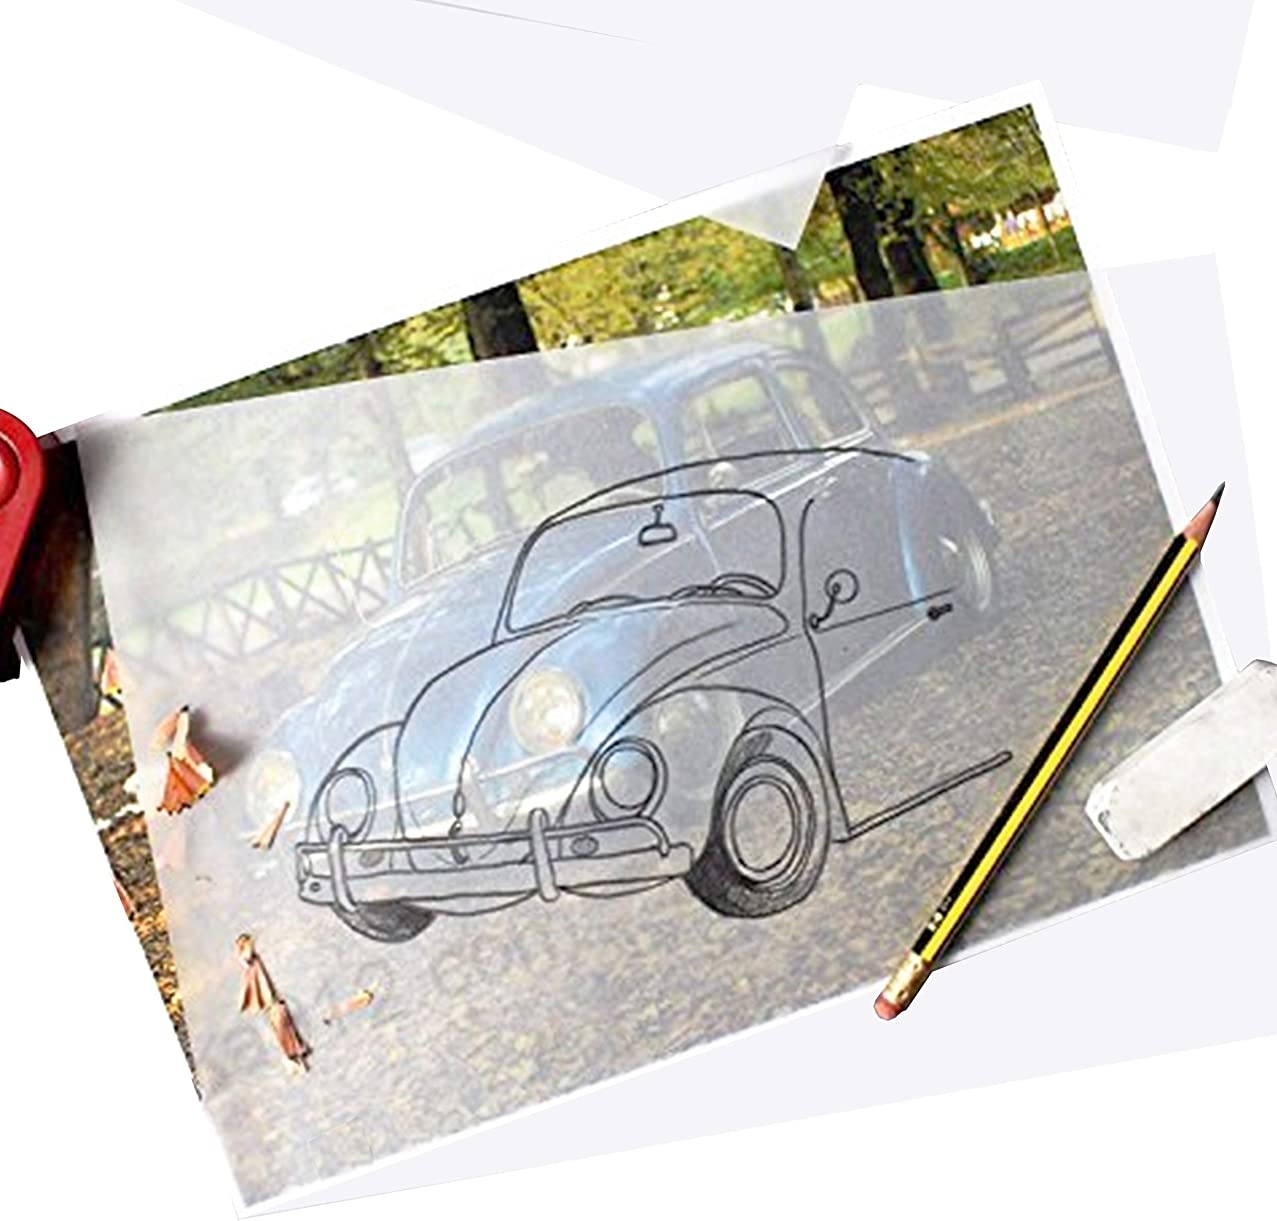 A4 Size Artist's Tracing Paper, 8.3 x 11.5 inch, 100 Sheets-Translucent Sketching and Tracing Paper for Pencil, Marker and Ink, Lightweight